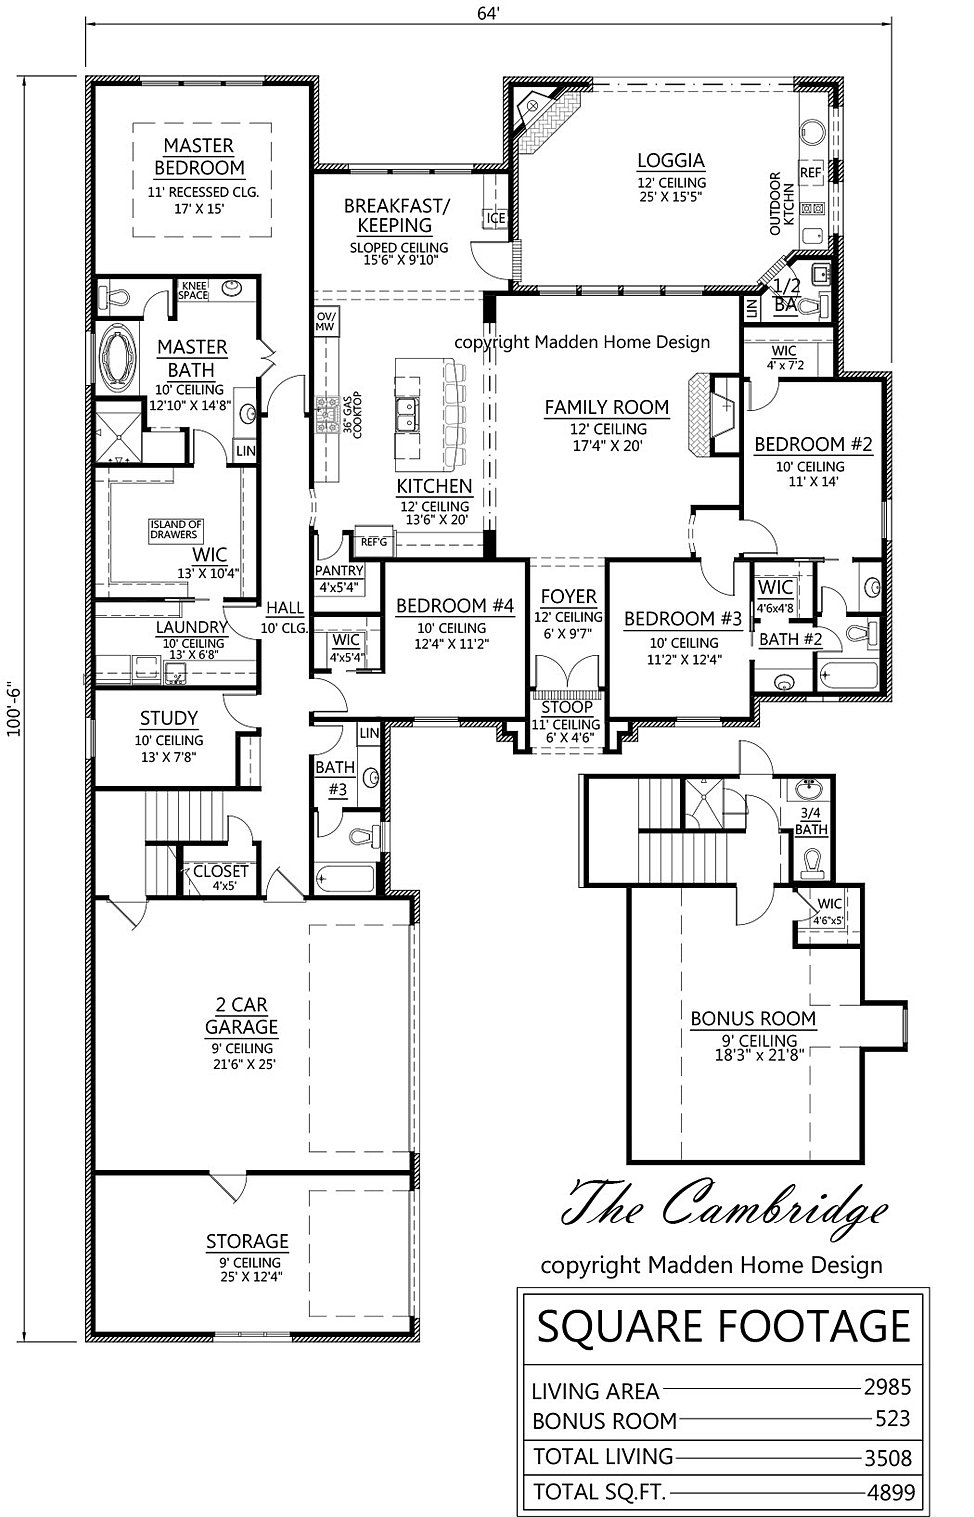 madden home design - the cambridge